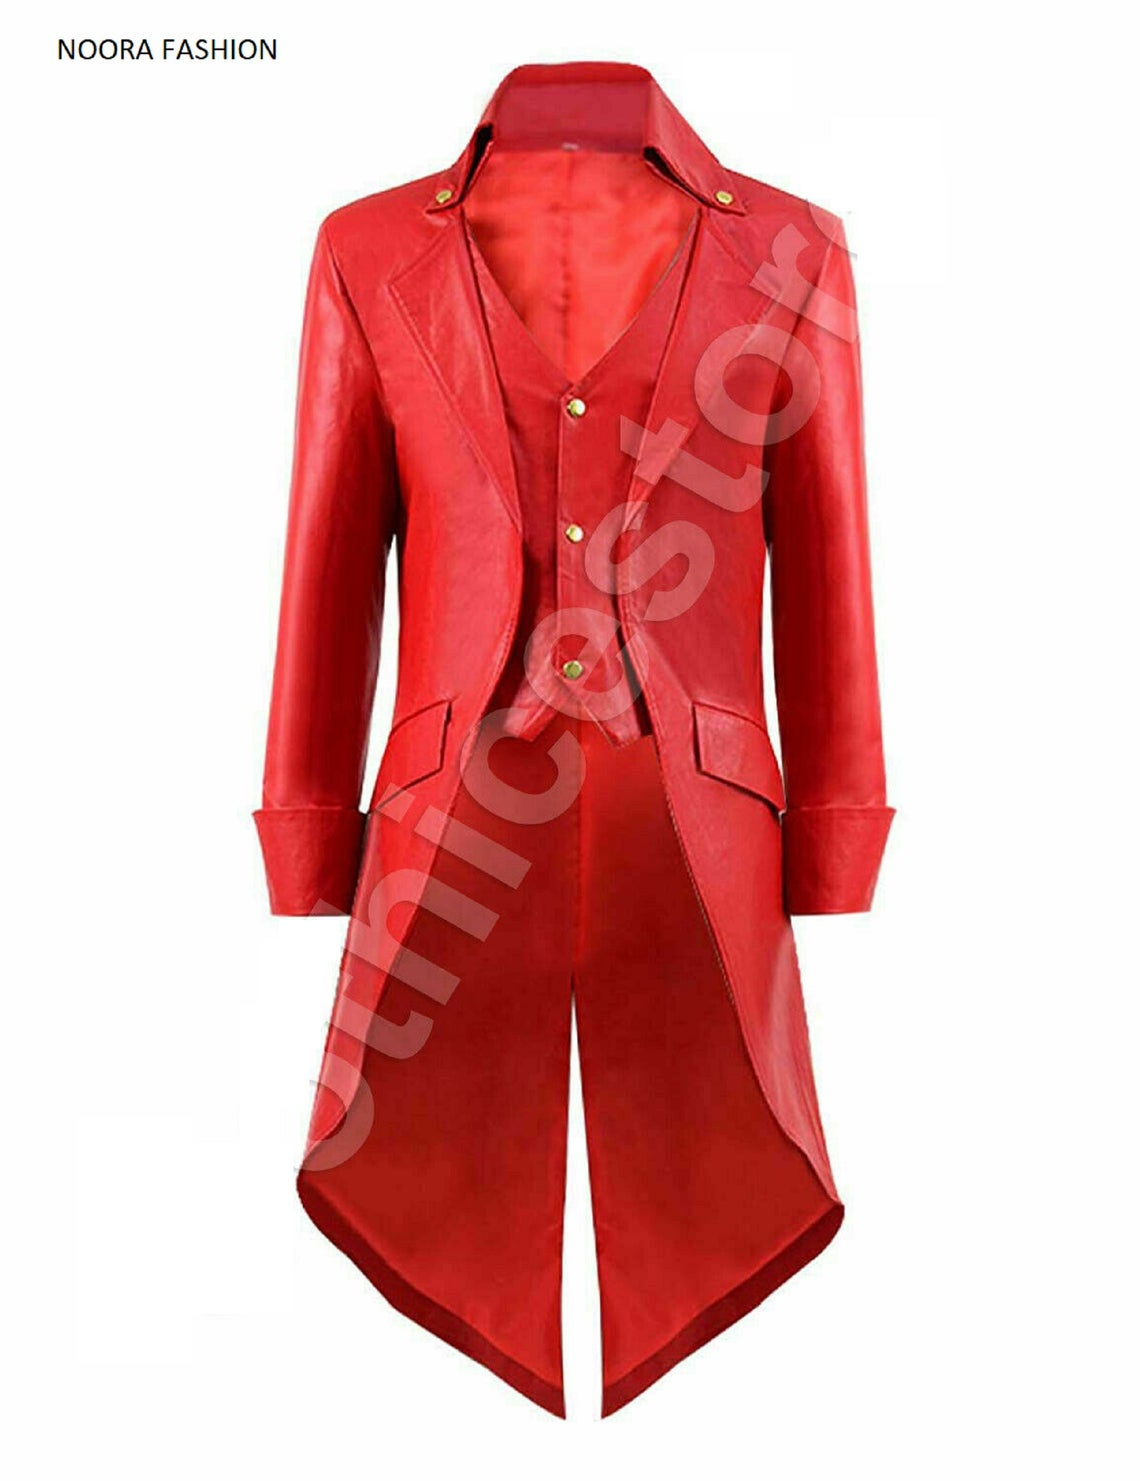 NOORA Men's STEAMPUNK Gothic Victorian Tailcoat Costum RED Genuine Leather Coat Party OverCoat,Long Coat,Classic Young Boy's Dress-SJ507